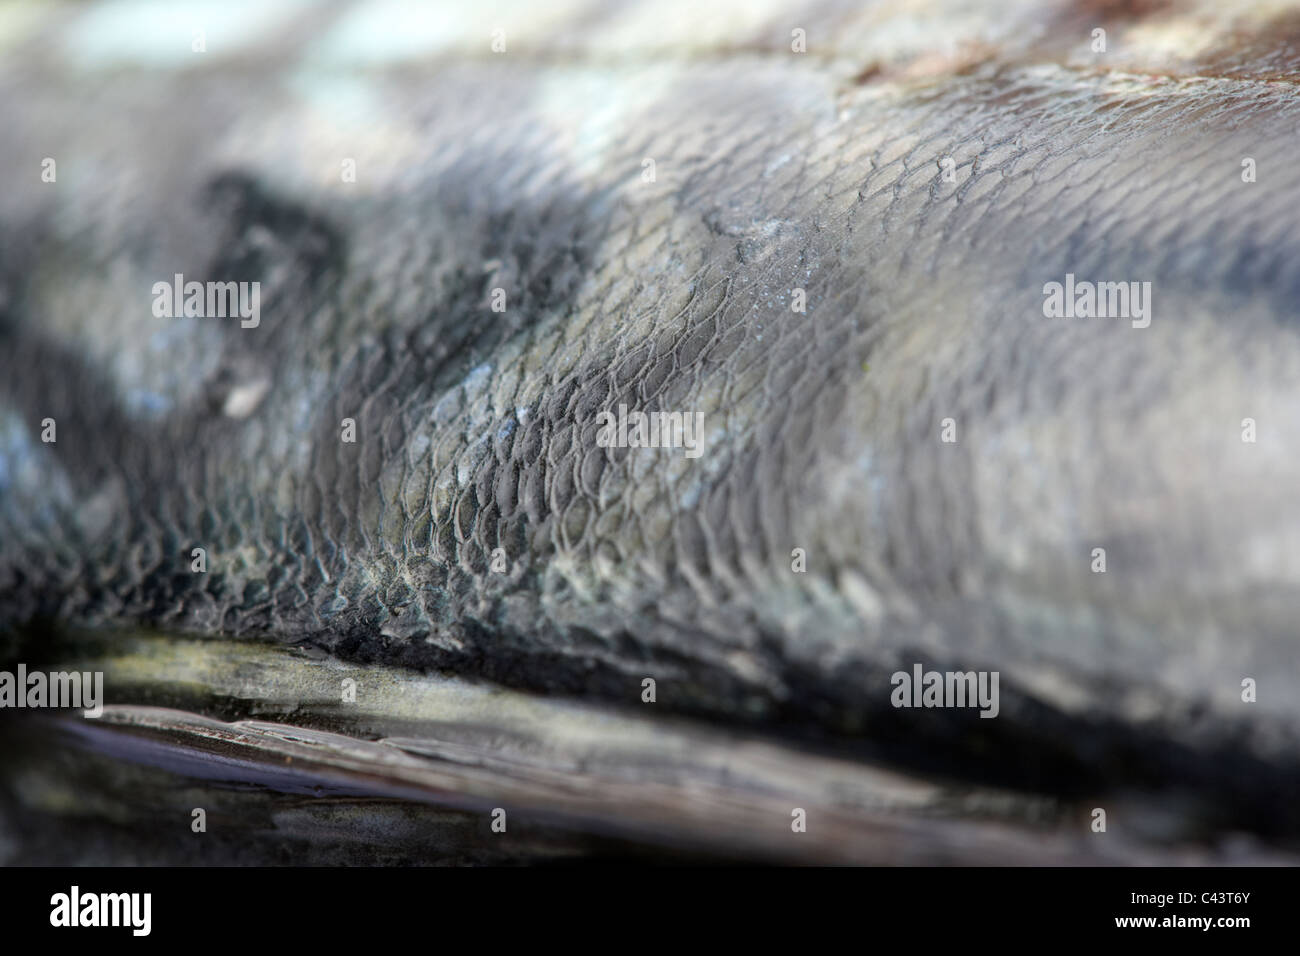 side scales on freshly caught mackerel fish on a plastic cutting board - Stock Image